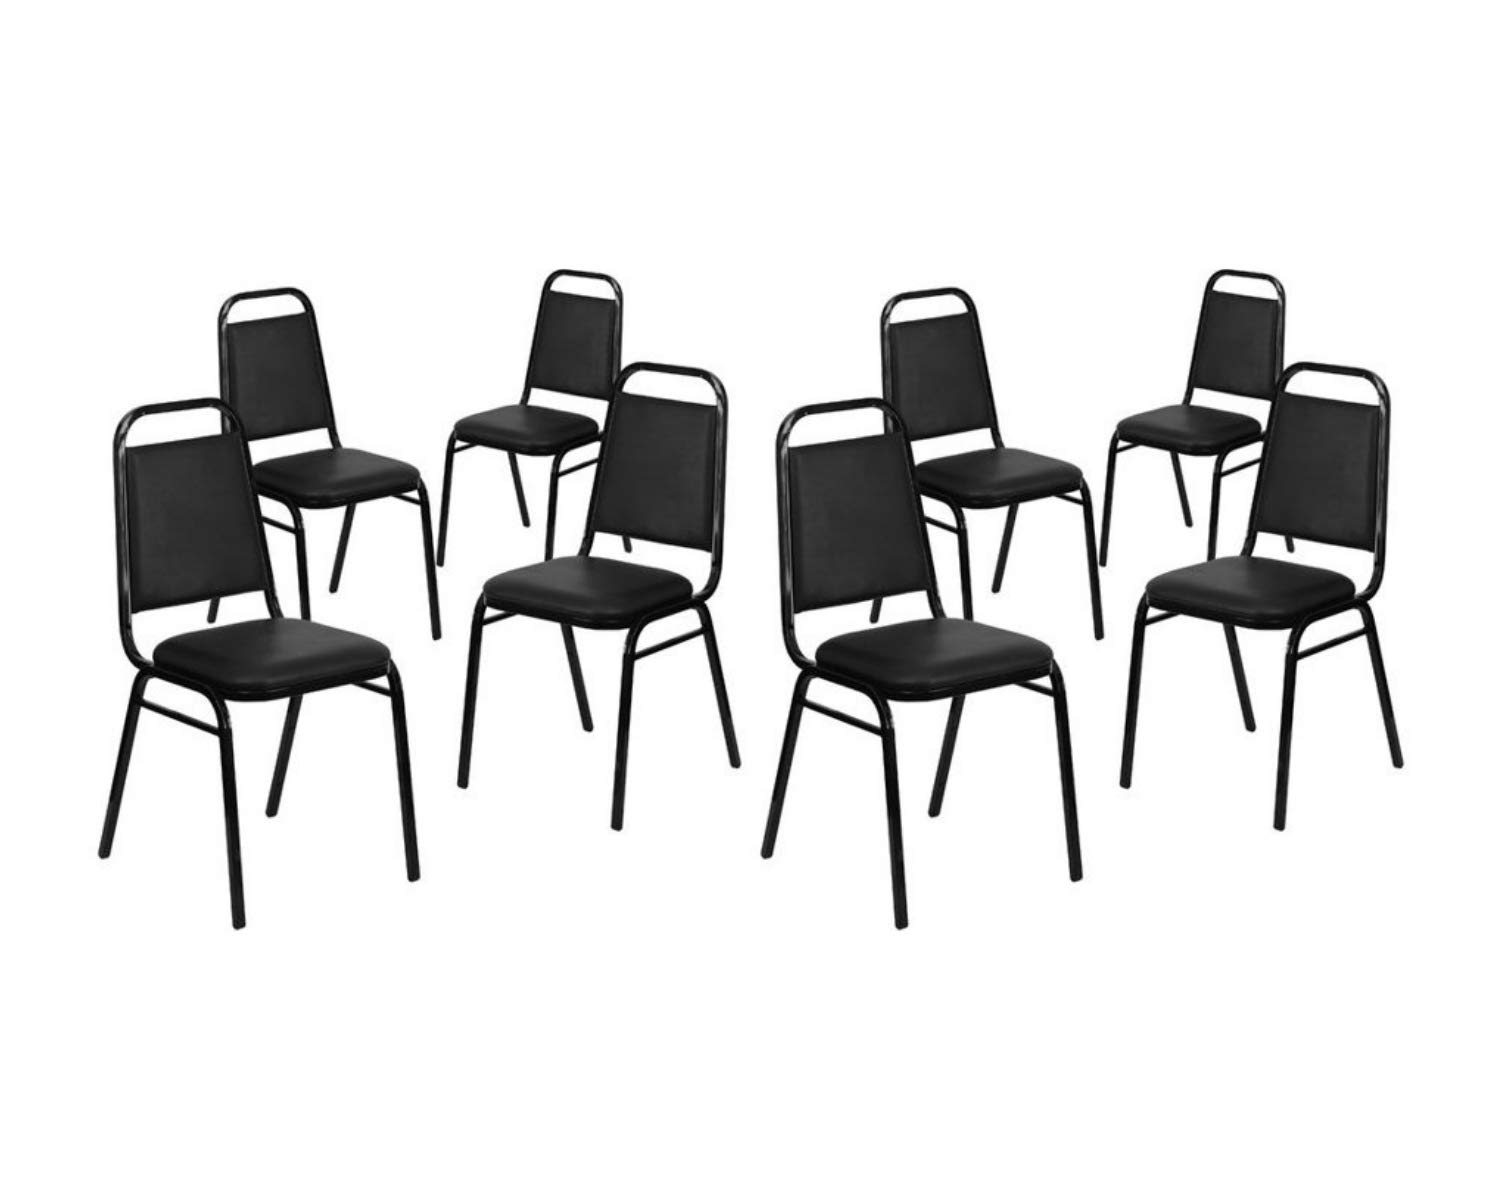 Flash Furniture. Hercules Series Trapezoidal Back Stacking Banquet Chair in Black Vinyl - Black Frame - 4-FD-BHF-2-GG (8 Pack, Black Vinyl/Black Frame)